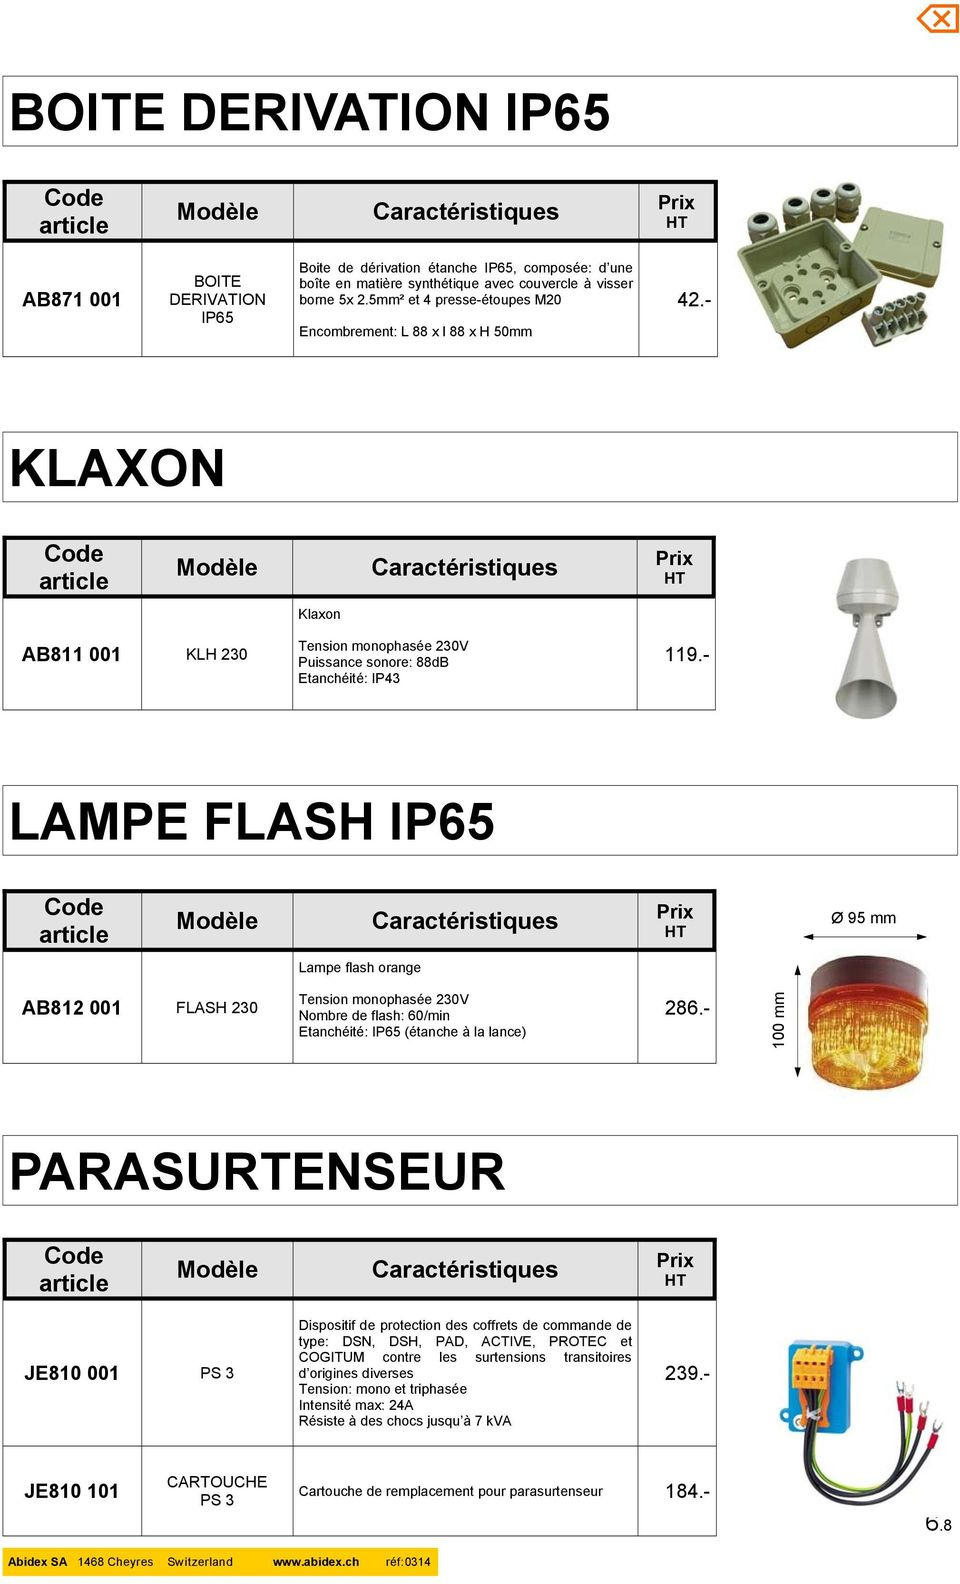 - LAMPE FLASH IP65 Ø 95 mm Lampe flash orange AB812 001 FLASH 230 Tension monophasée 230V Nombre de flash: 60/min Etanchéité: IP65 (étanche à la lance) 286.